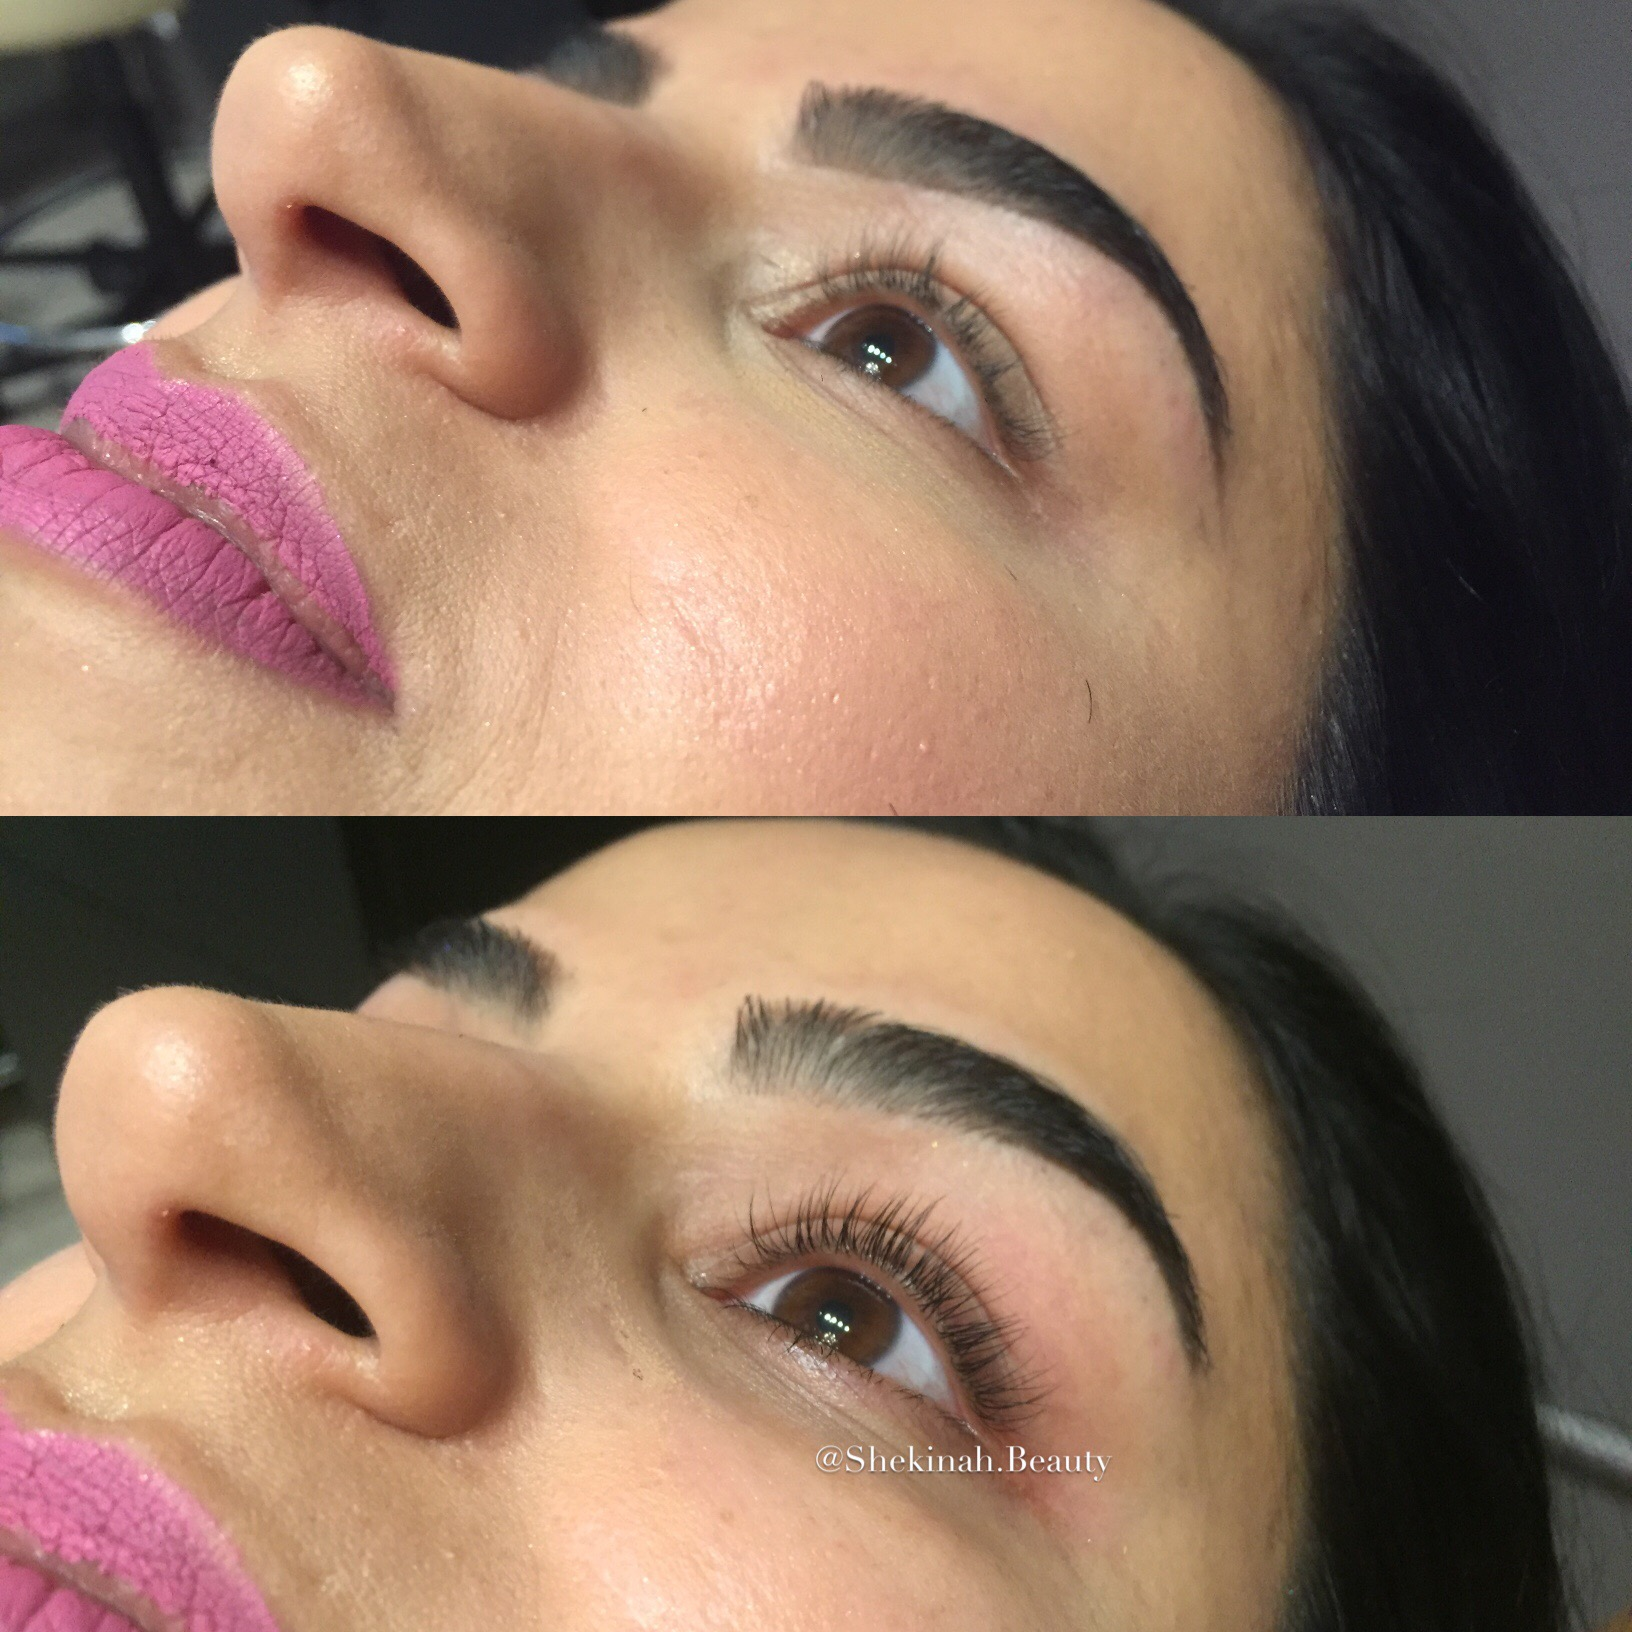 Sky Beauté Brow Waxing Studio Columbia, Maryland DMV